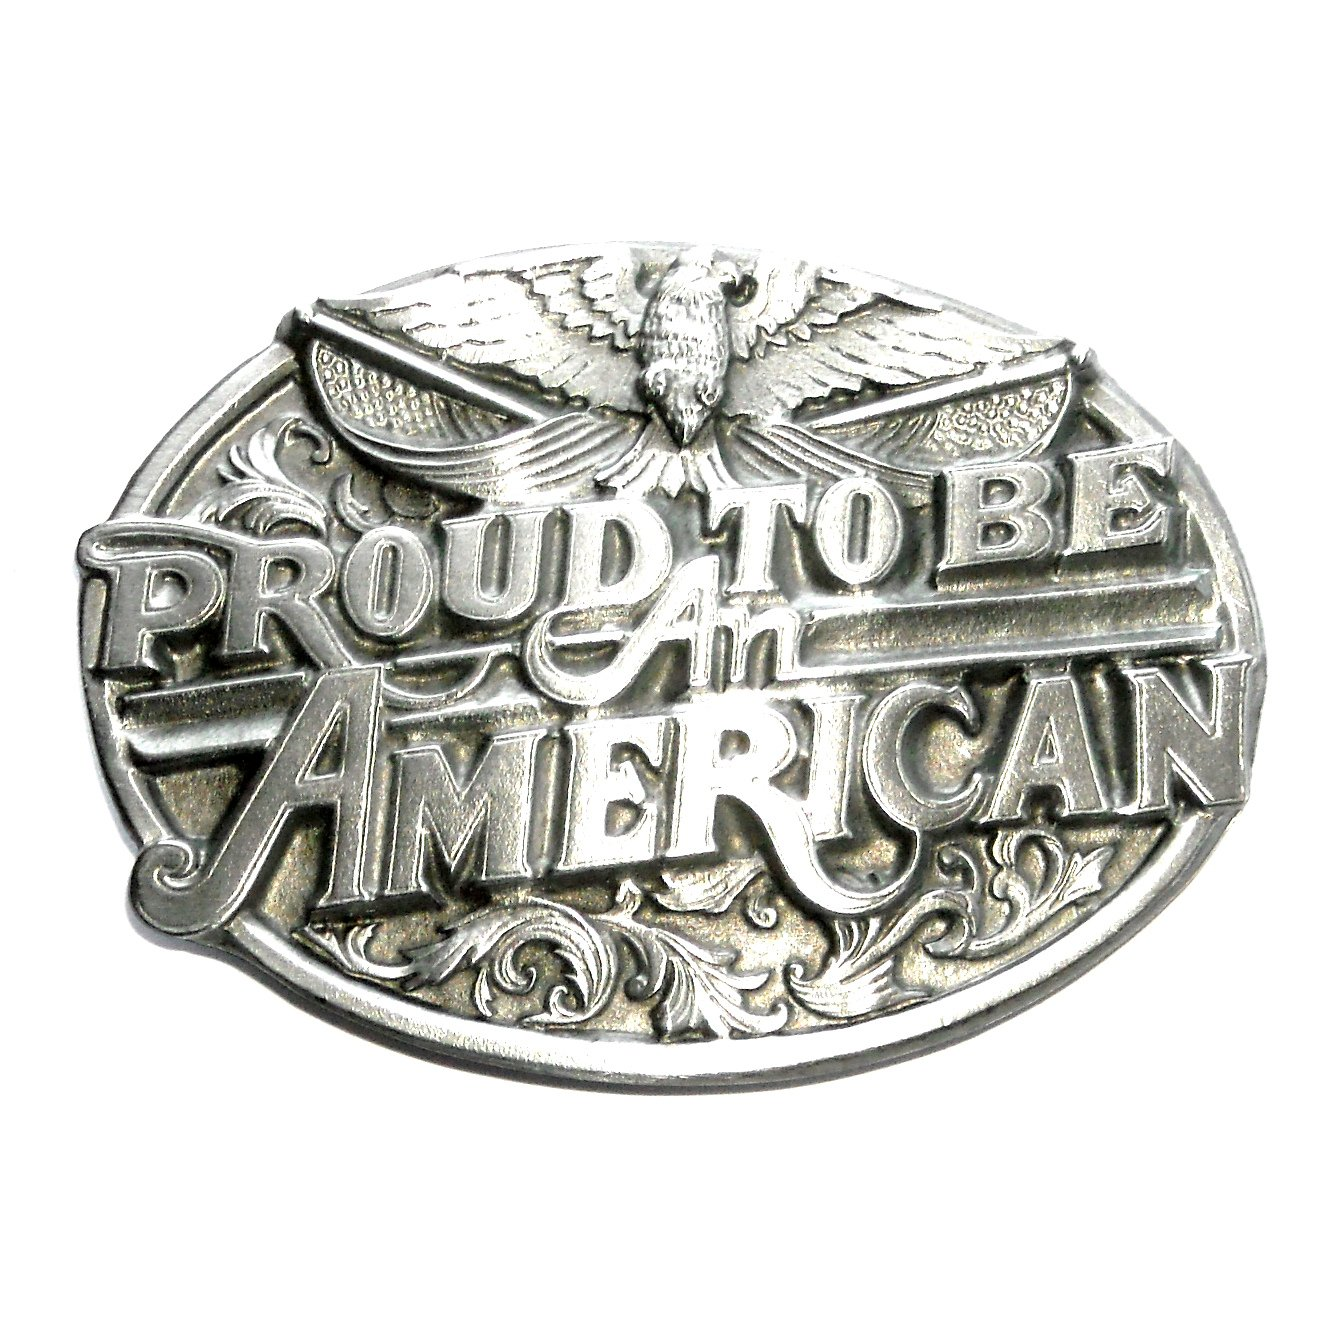 Proud To Be An American Siskiyou Oregon Pewter Belt Buckle